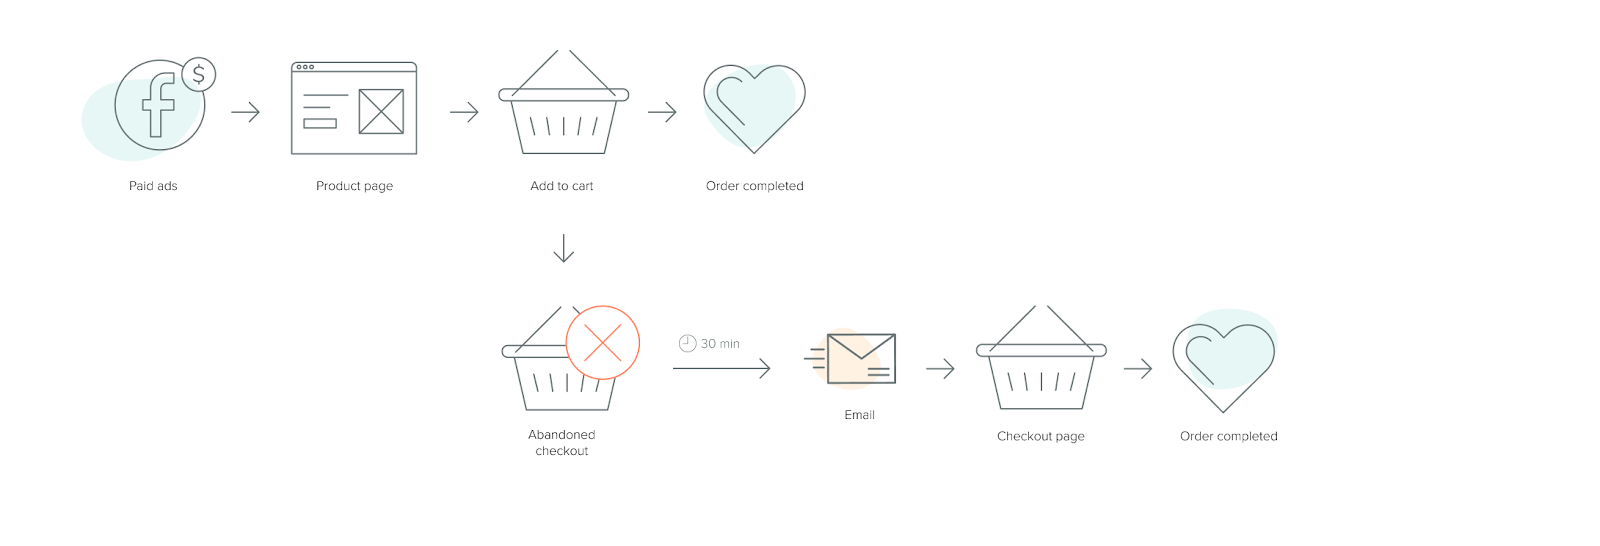 Firepush graphics for basic approach for retargeting customers